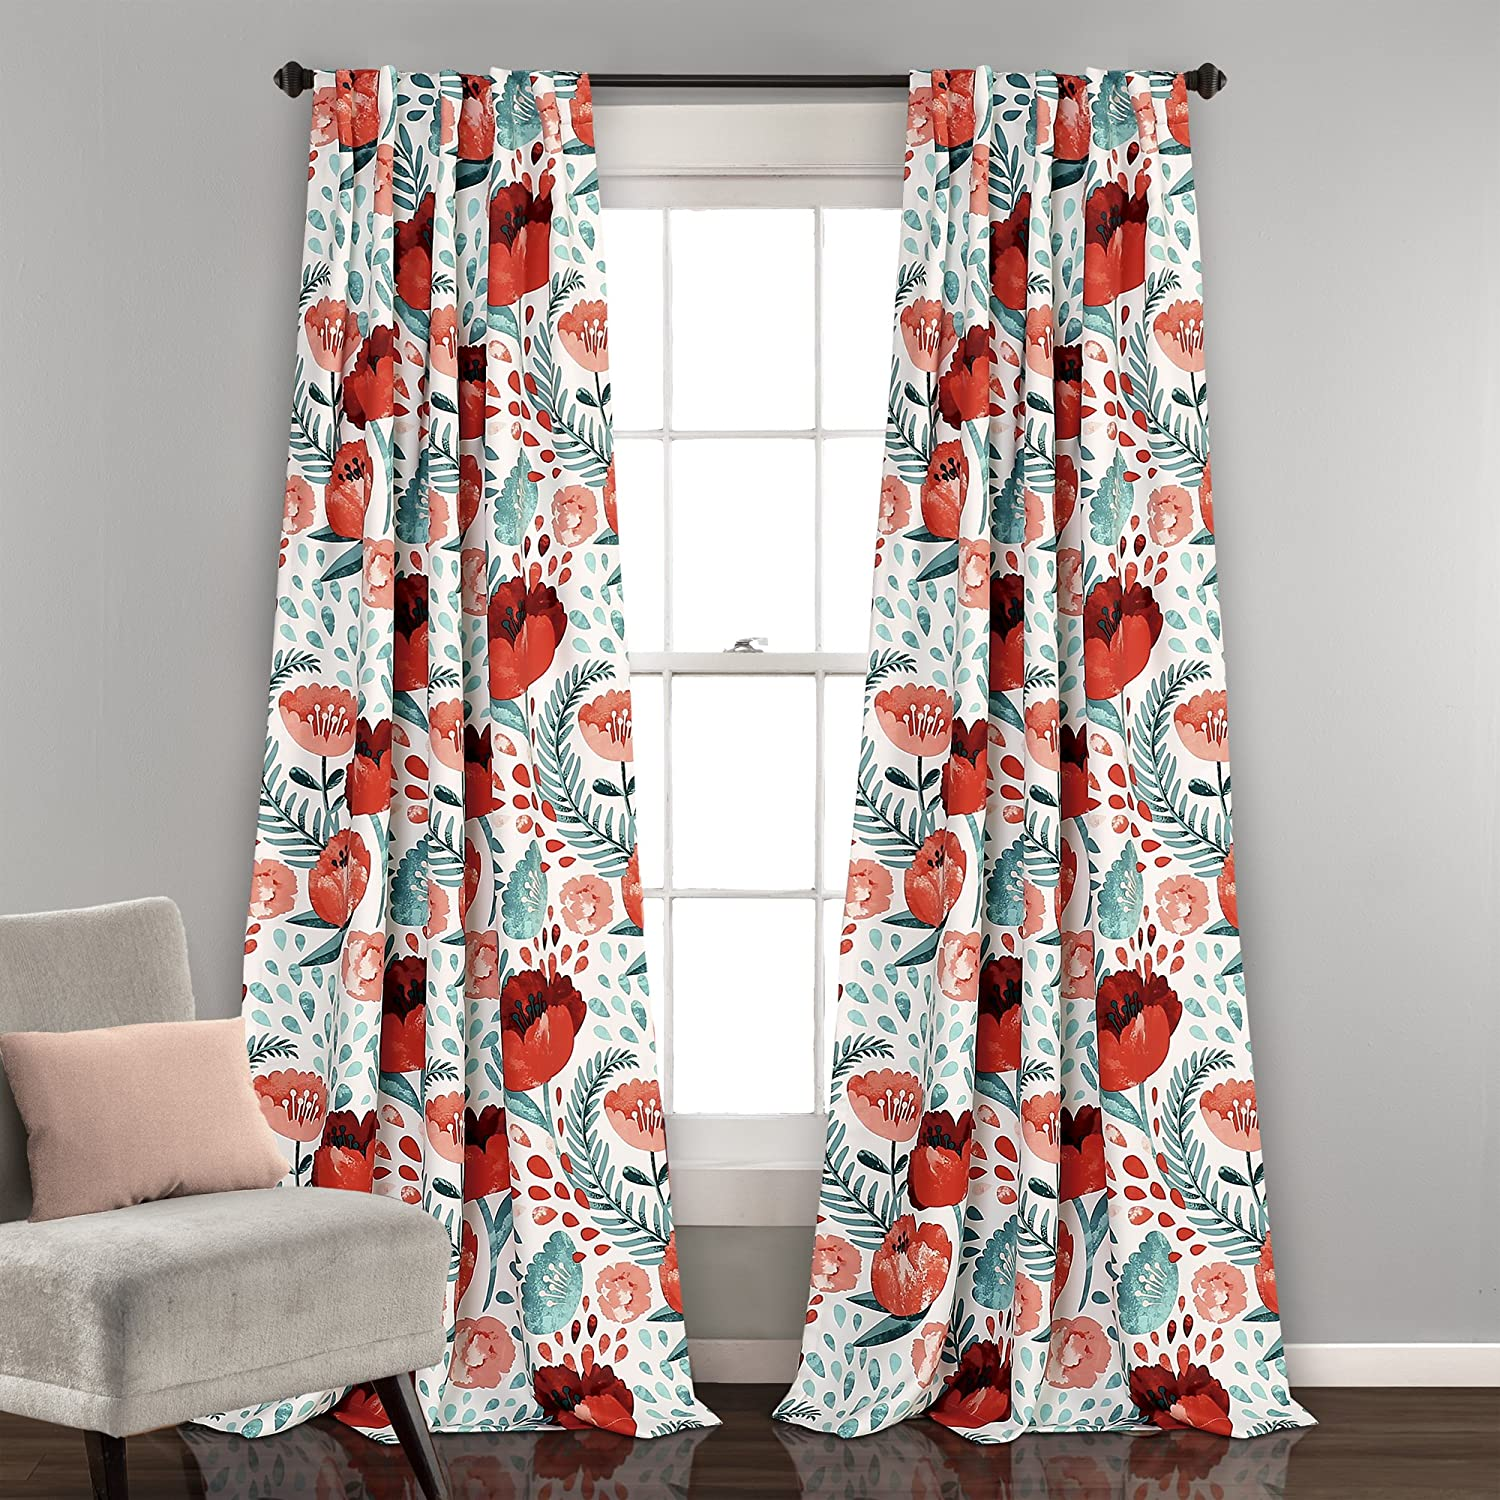 "Lush Decor Poppy Garden Curtains Room Darkening Window Panel Set for Living, Dining, Bedroom (Pair) 84"" x 52"" Multi"